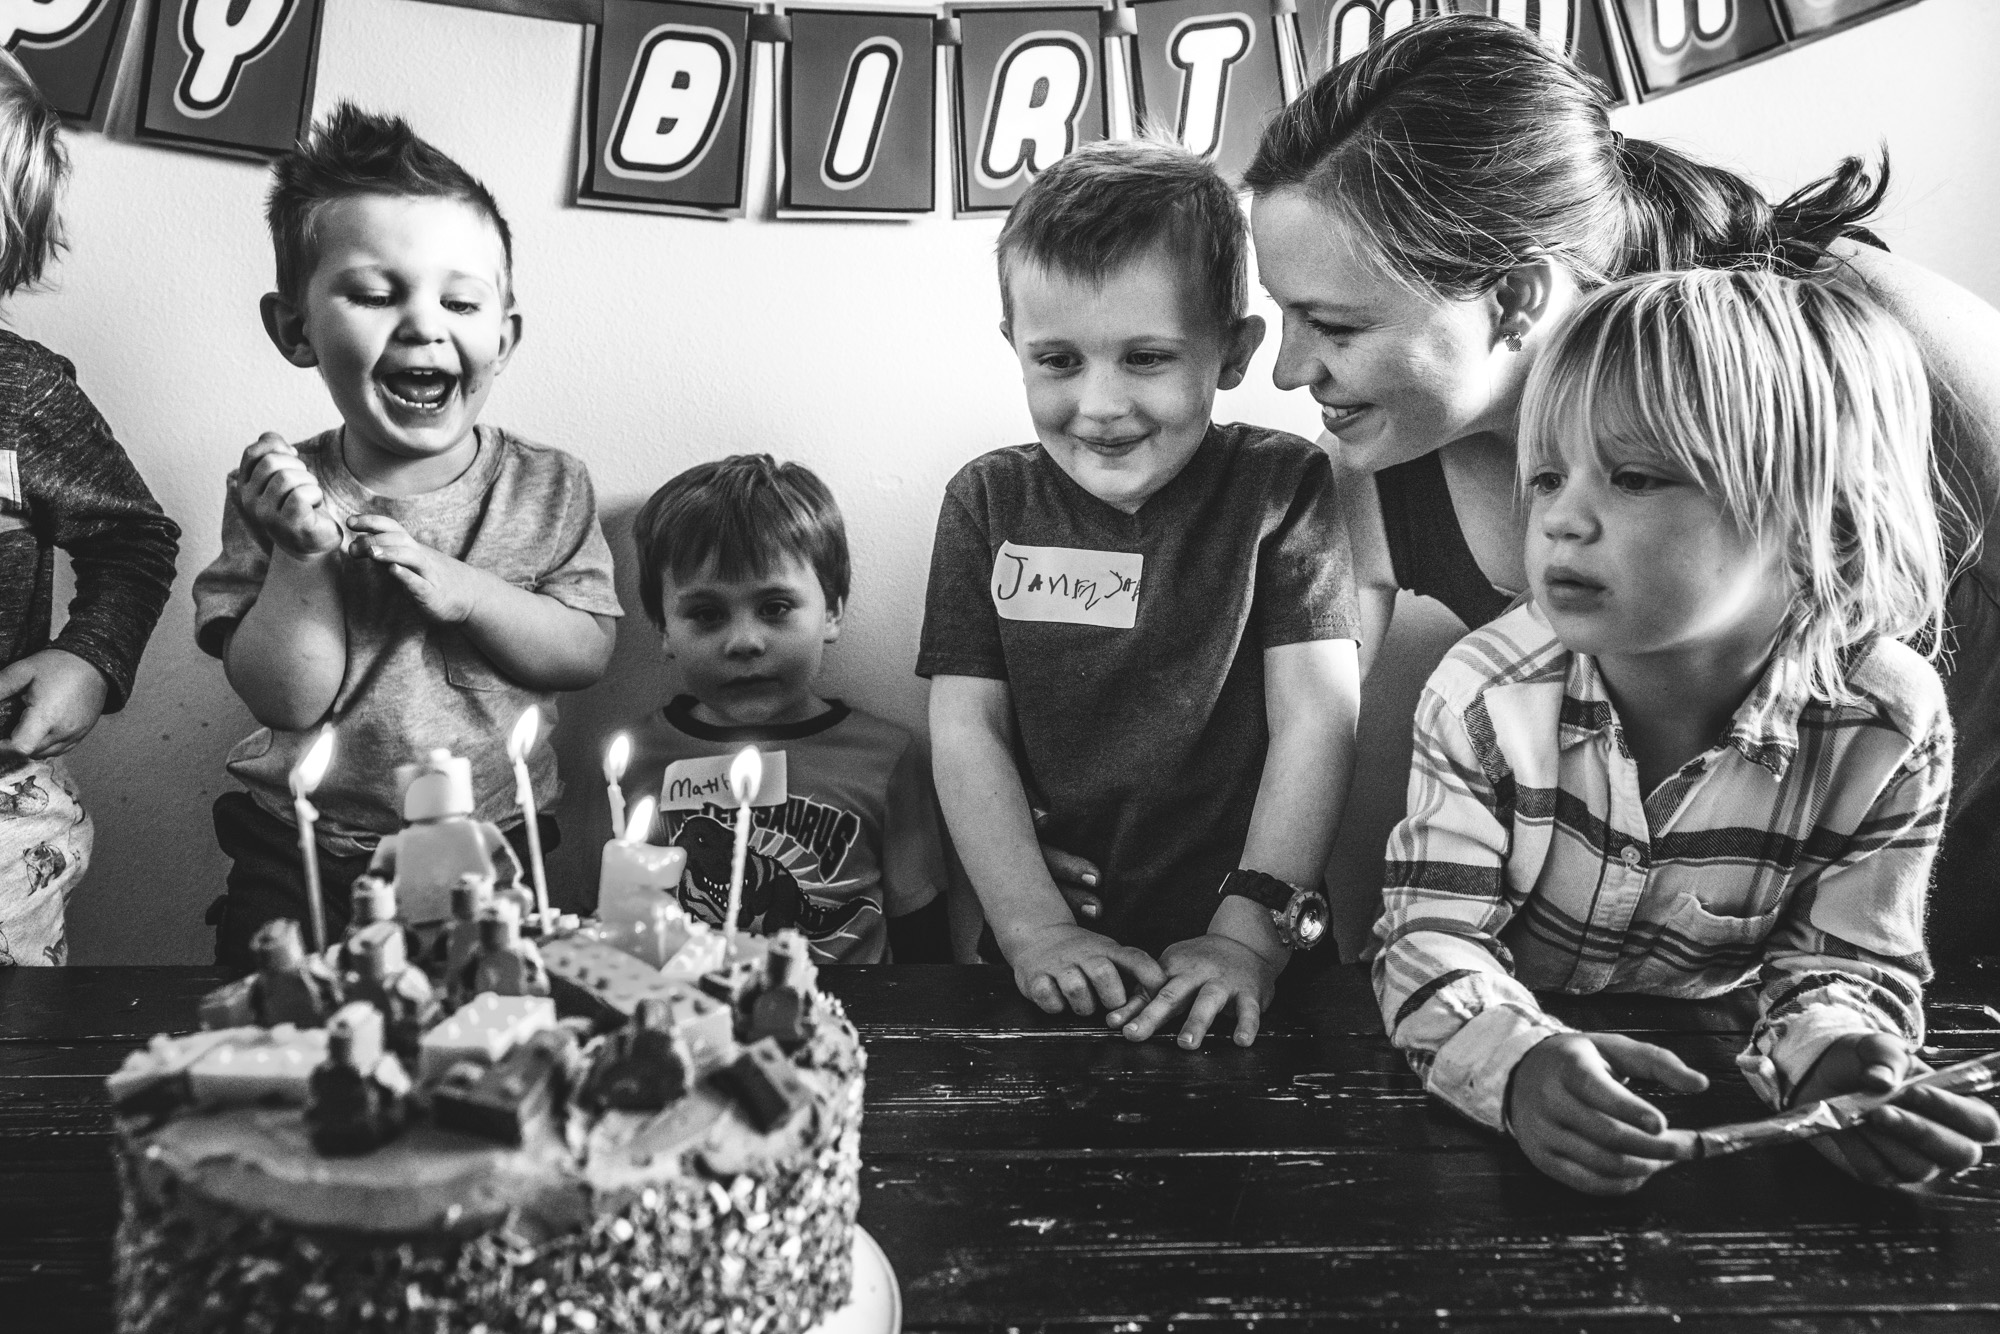 Black and white photo of a little boy at his birthday party, getting ready to blow out his candles as his friends gather round him and his mother smiles on